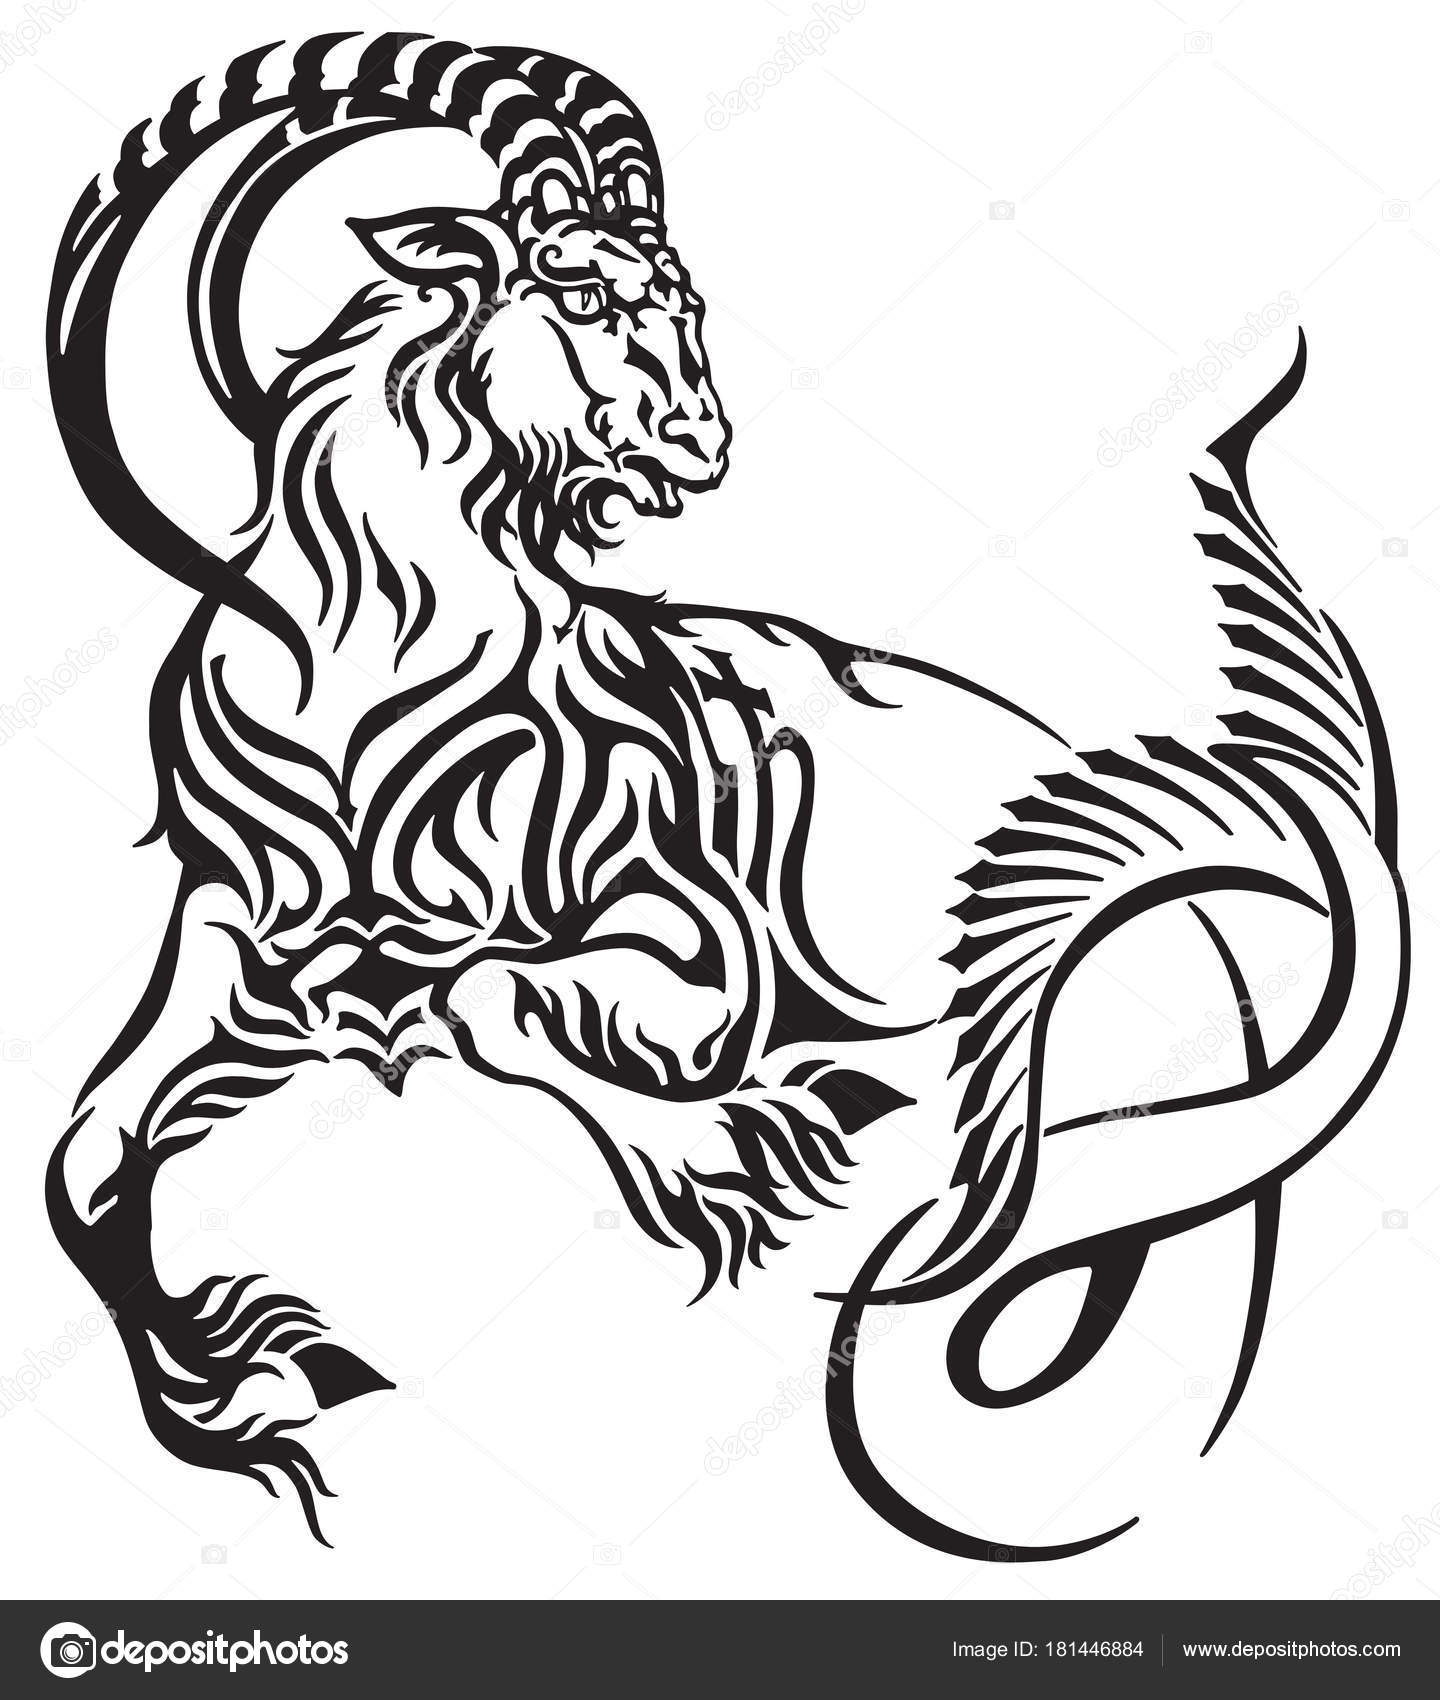 Capricorn Zodiac Sign Tribal Tattoo Style Mythological Creature